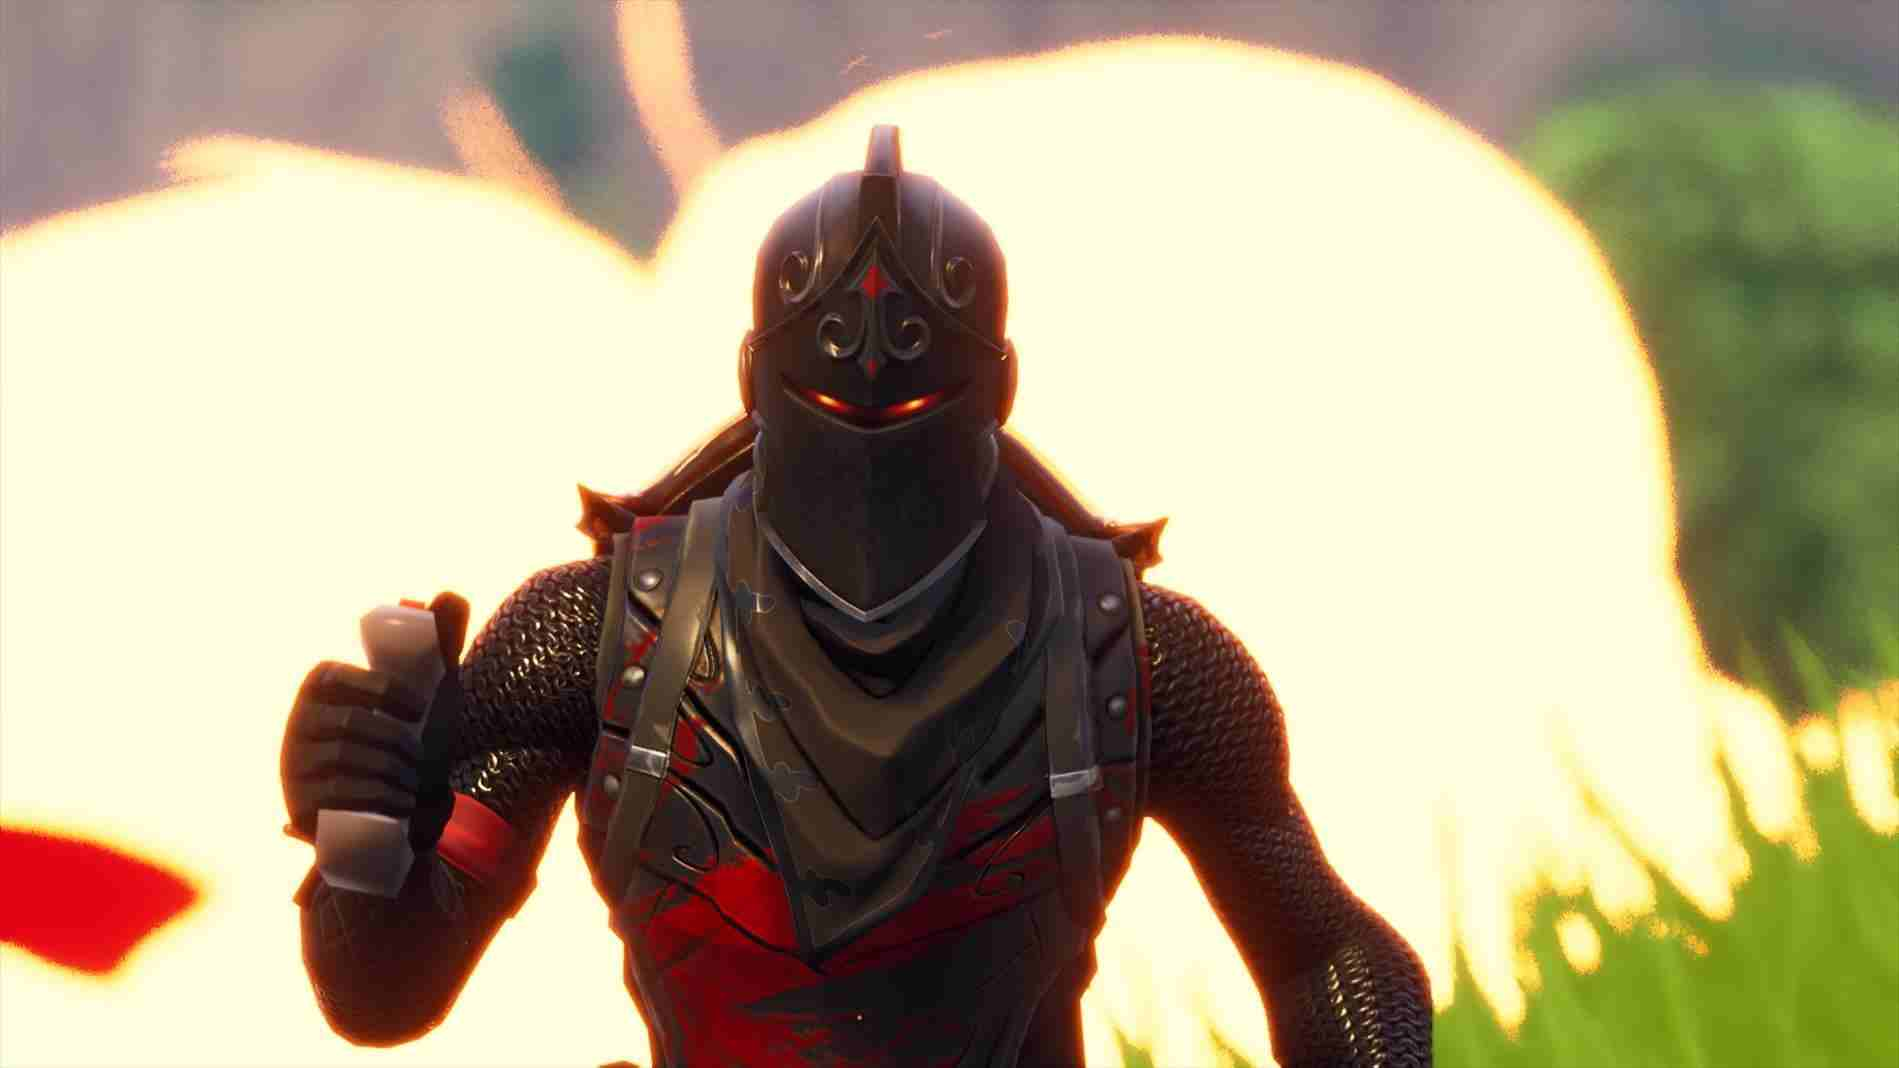 Wallpaper Fortnitebrrhredditcom Mobile Raven Black Knight Fortnite ...